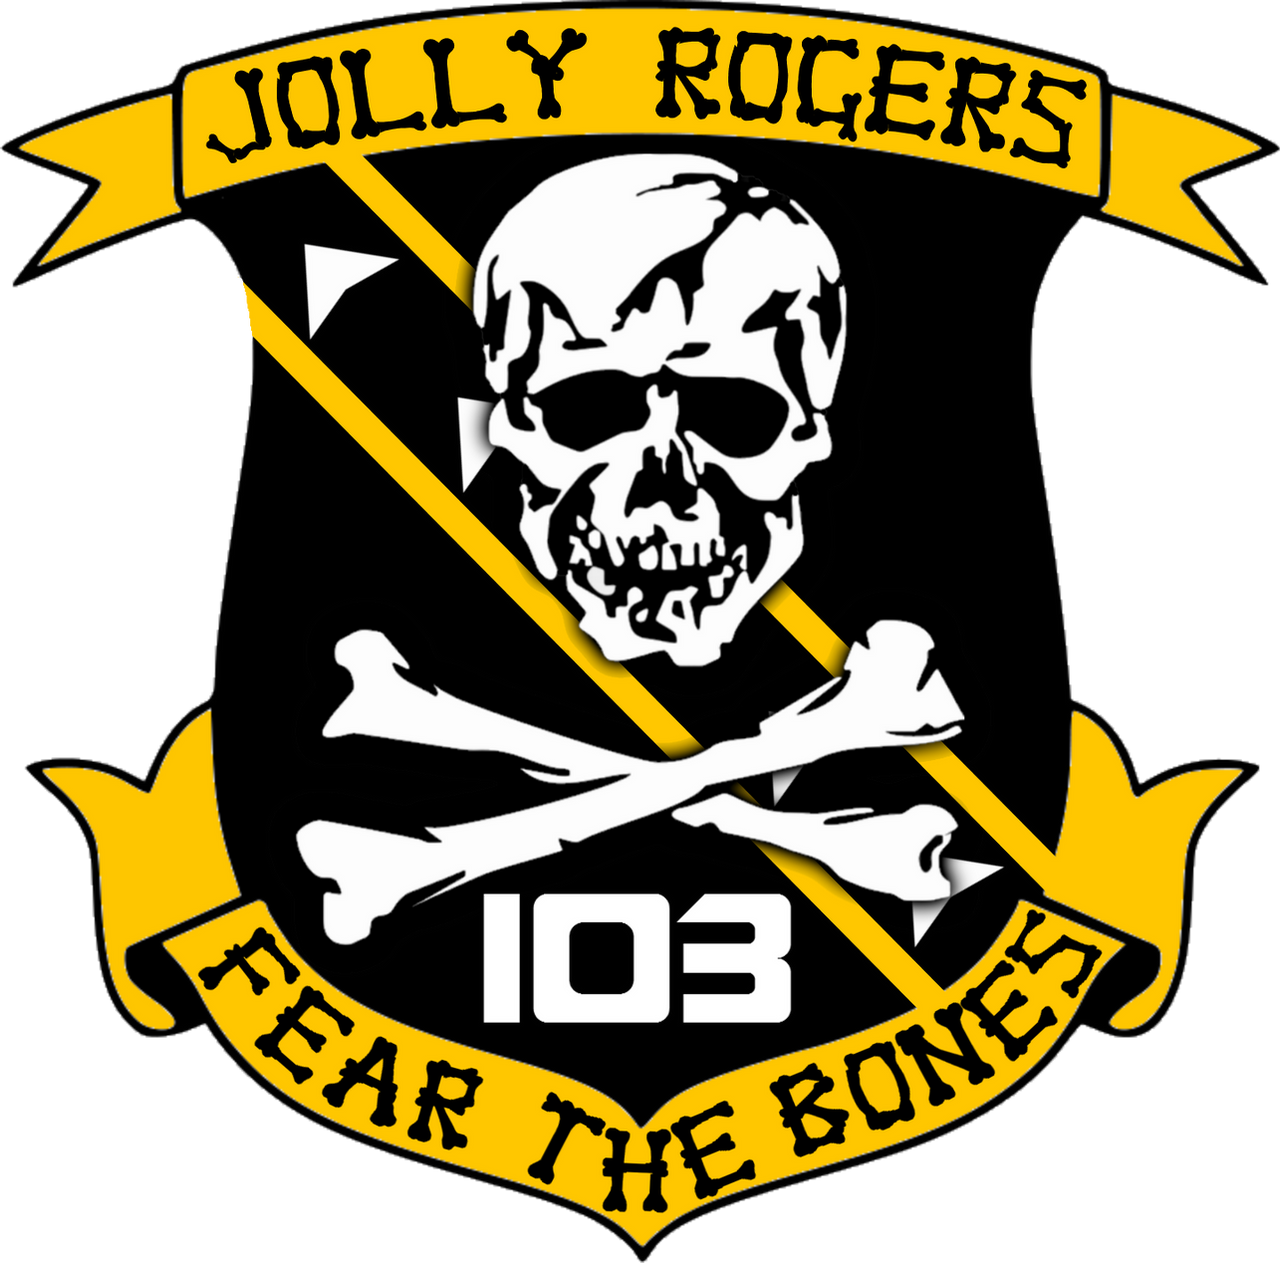 bsg vfs 103 jolly rogers squadron insignia by viperaviator dodge viper clipart viper logos clipart